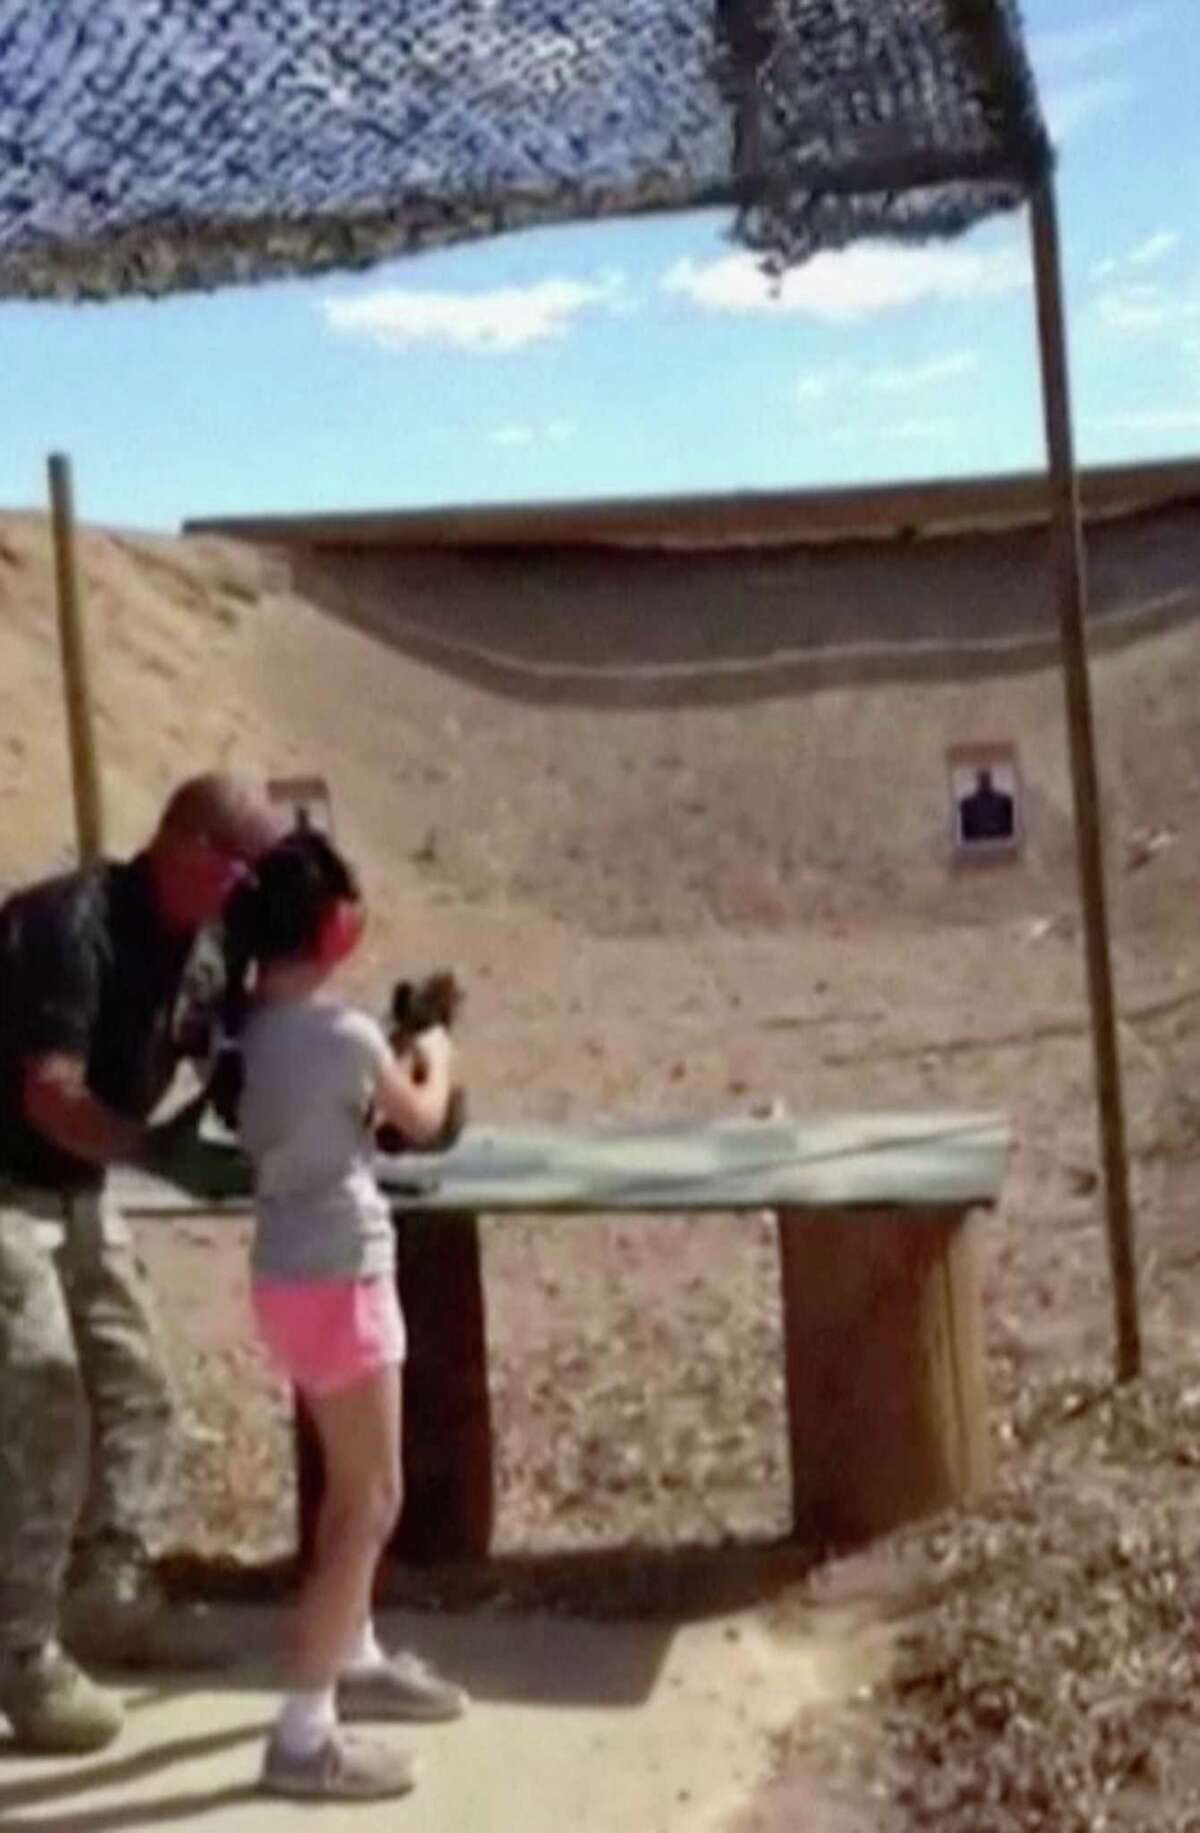 In this Aug. 25 image made from video and provided by the Mohave County Sheriff Department, firing-range instructor Charles Vacca, left, shows a 9-year-old girl how to use an Uzi. Vacca, 39, was standing next to the girl at the Last Stop range in Arizona, south of Las Vegas, when the girl squeezed the trigger, causing the Uzi to recoil upward and shoot Vacca in the head.